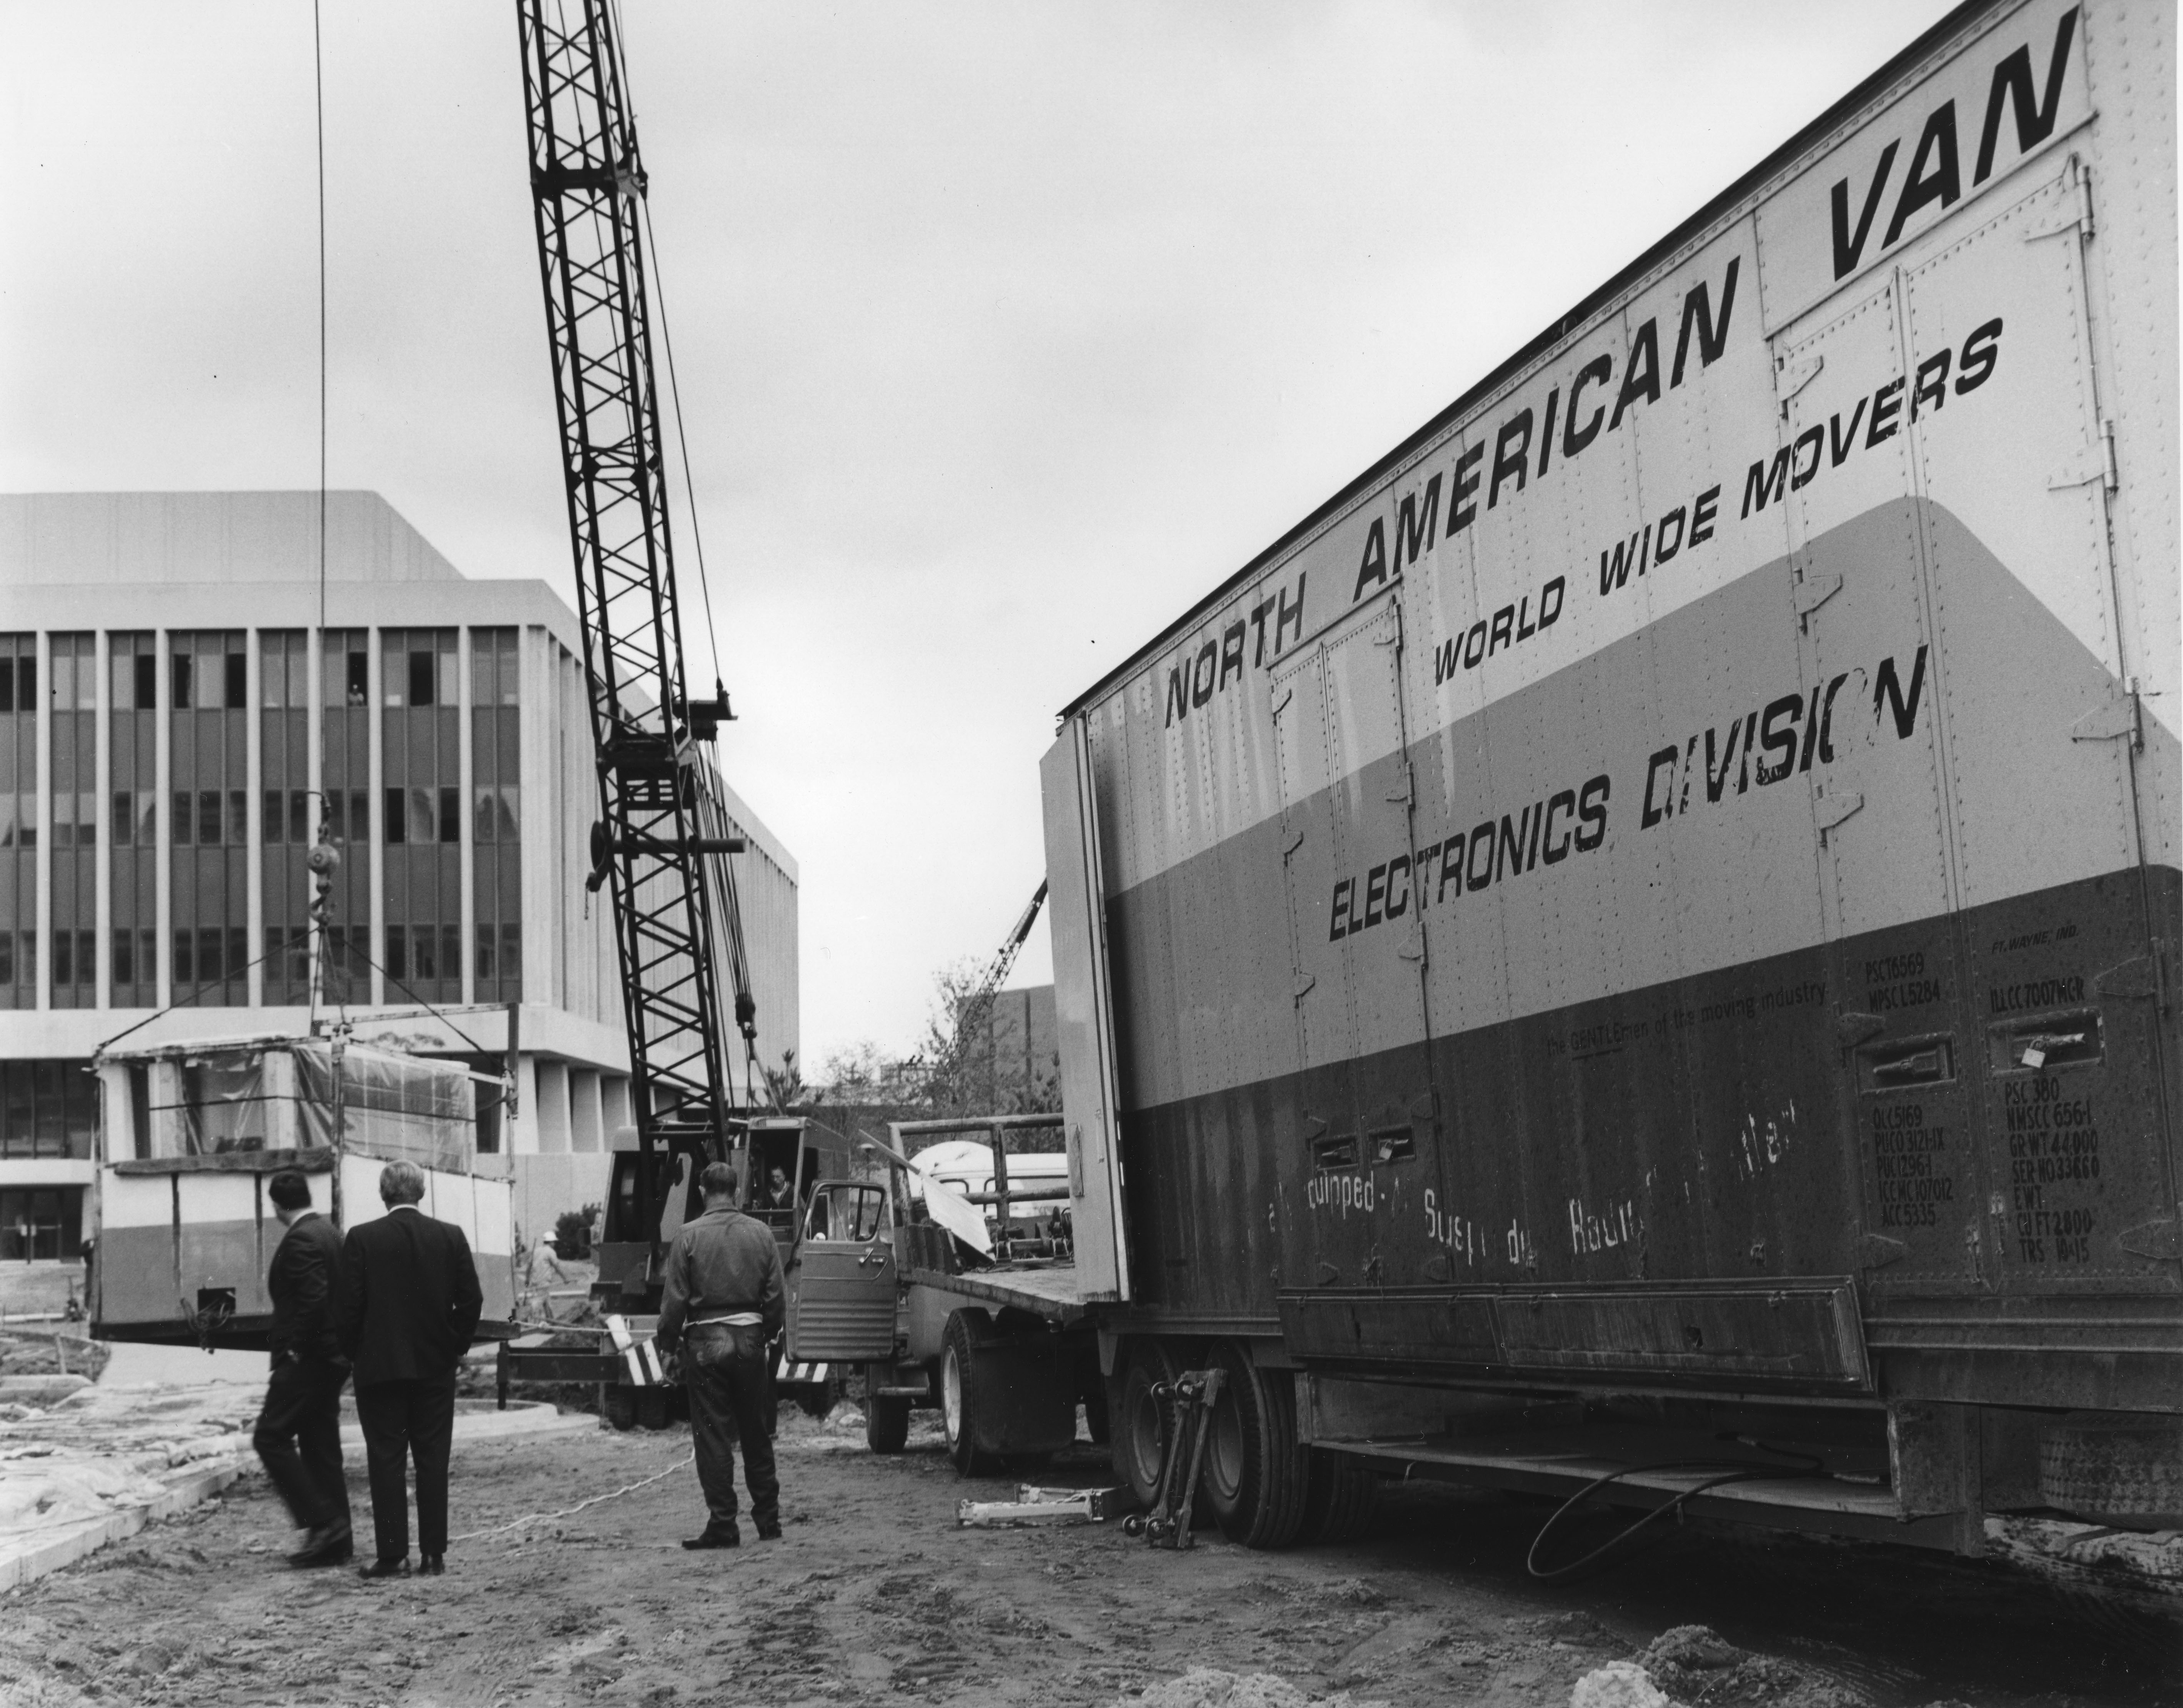 Crane lifting computer equipment, date unknown